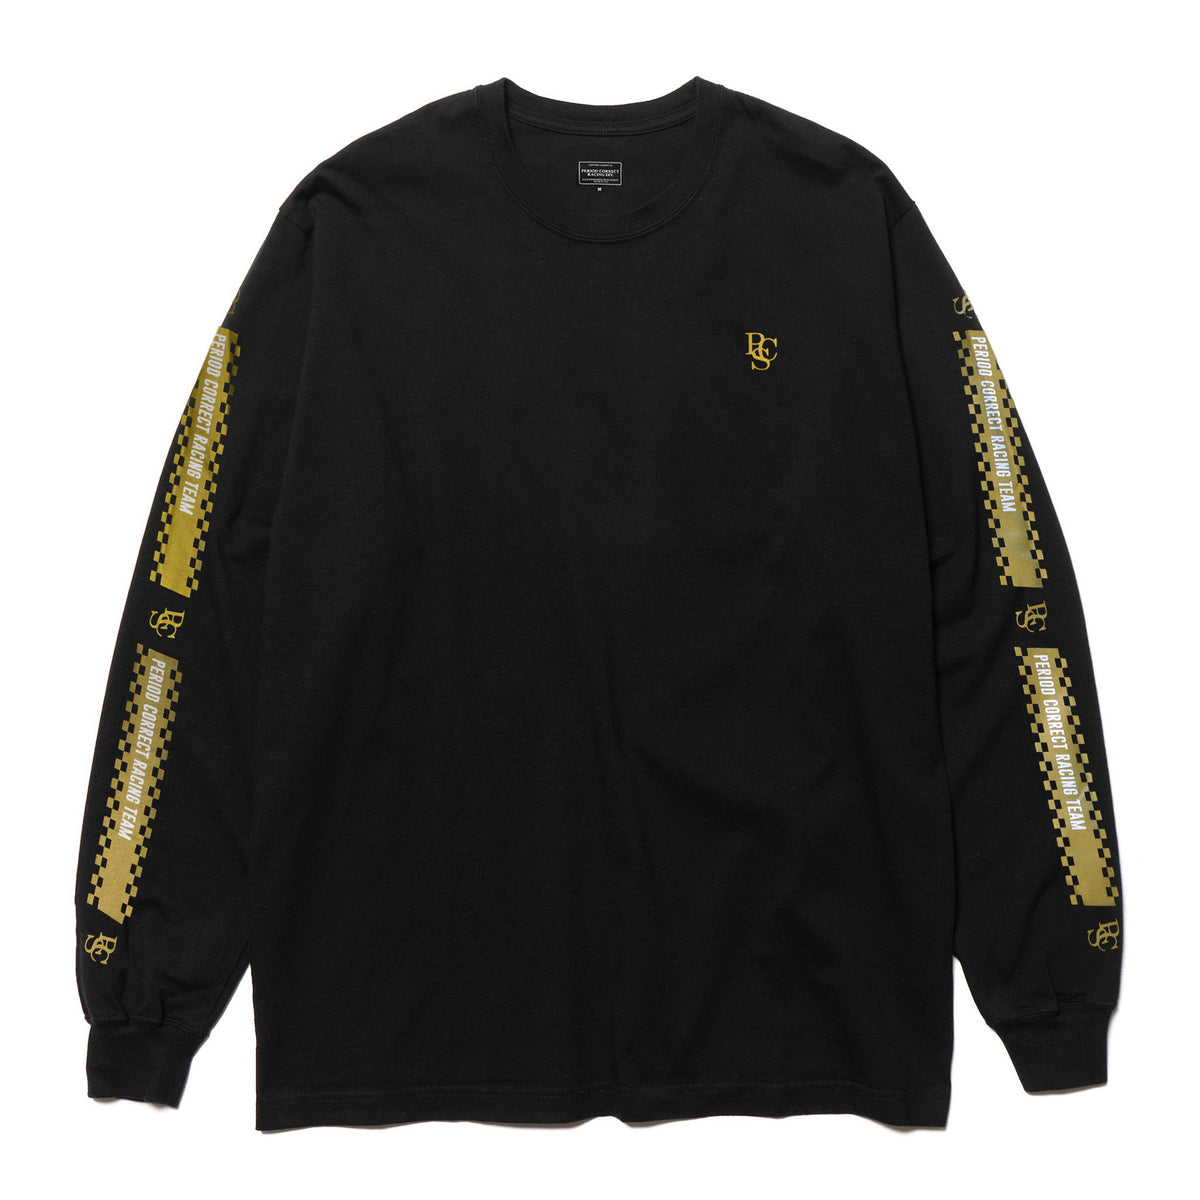 BLACK & GOLD L/S T-SHIRT